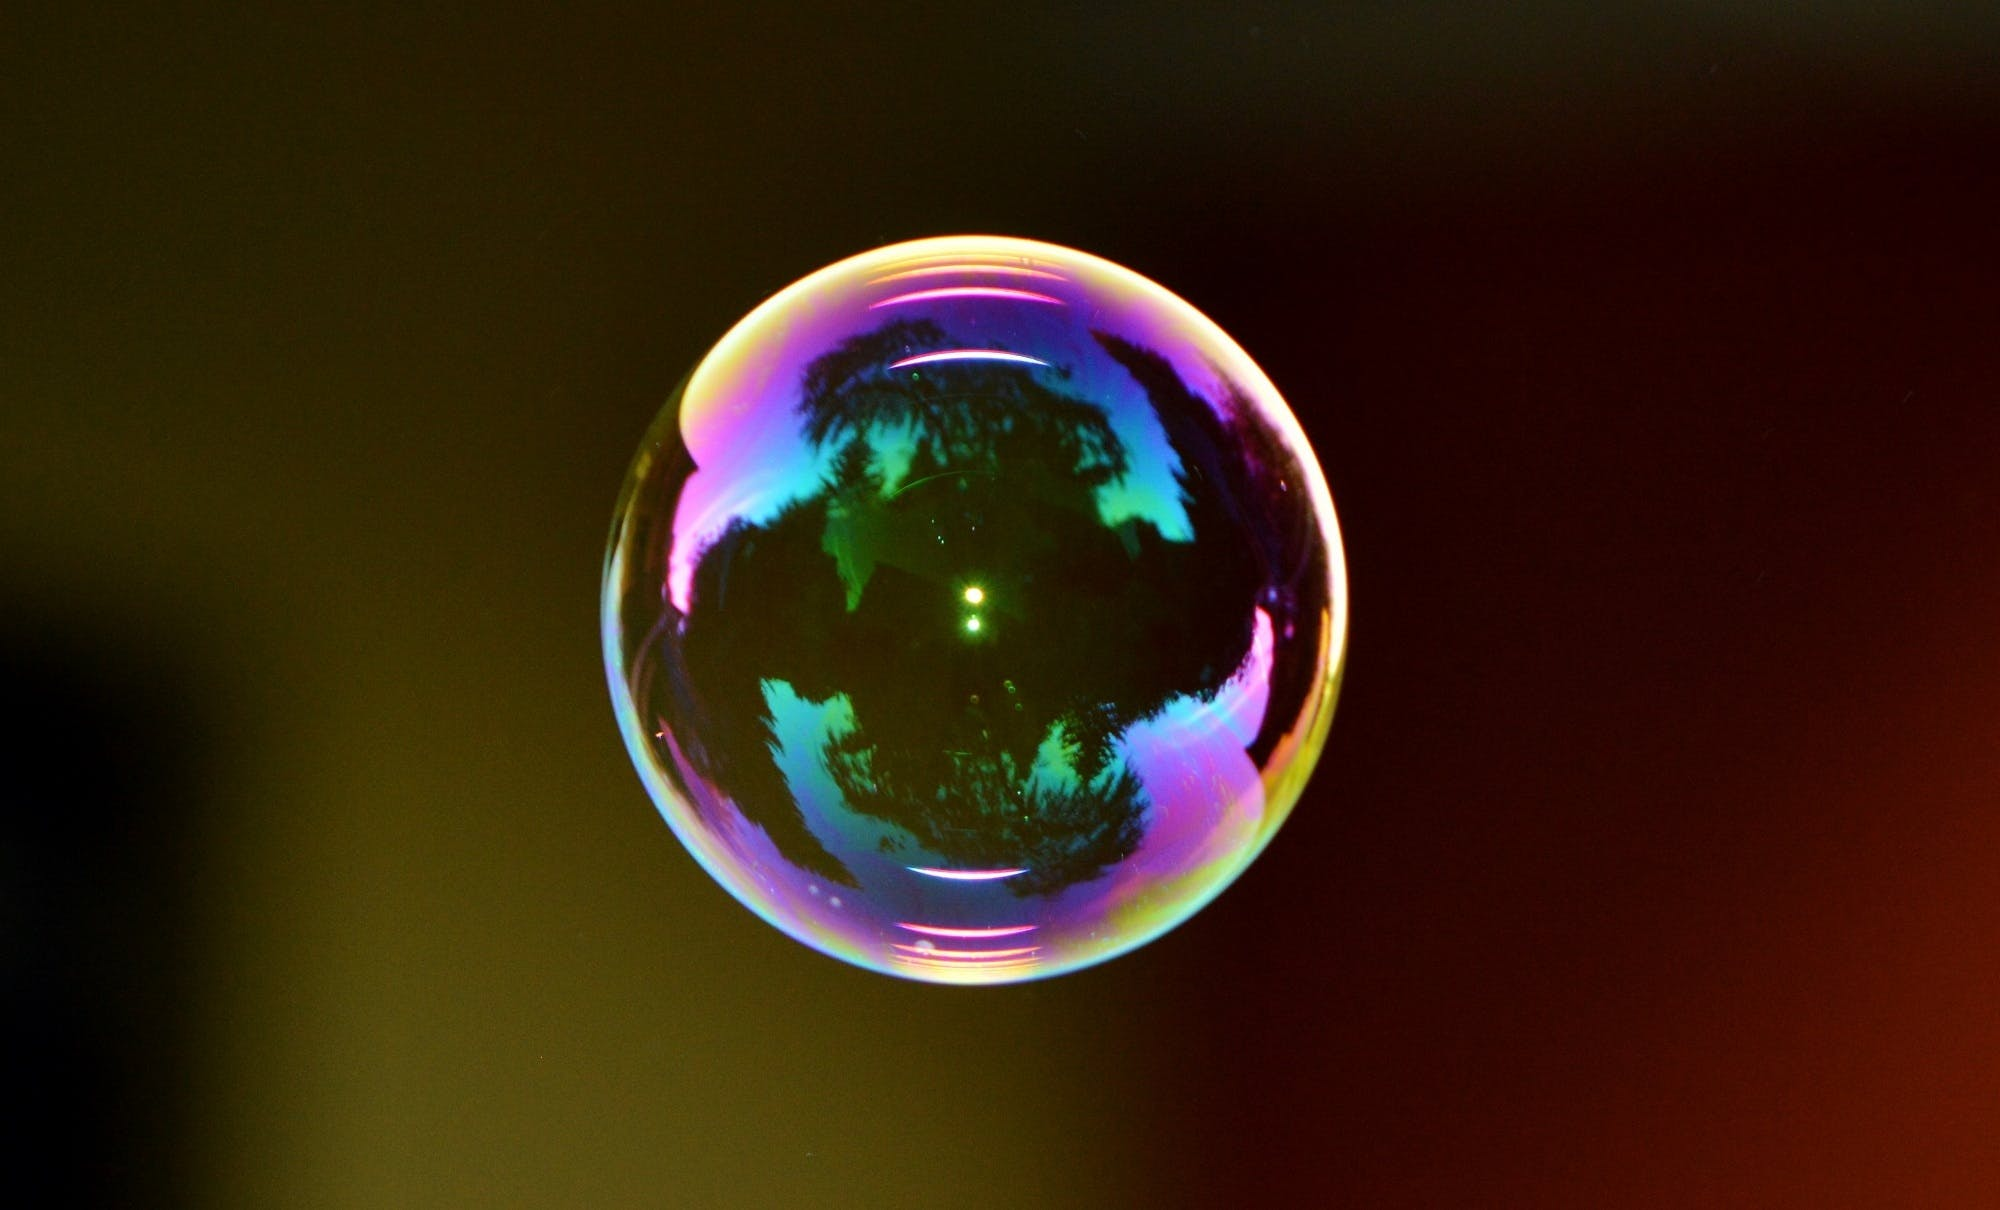 Macro Focus Photo of a Bubble